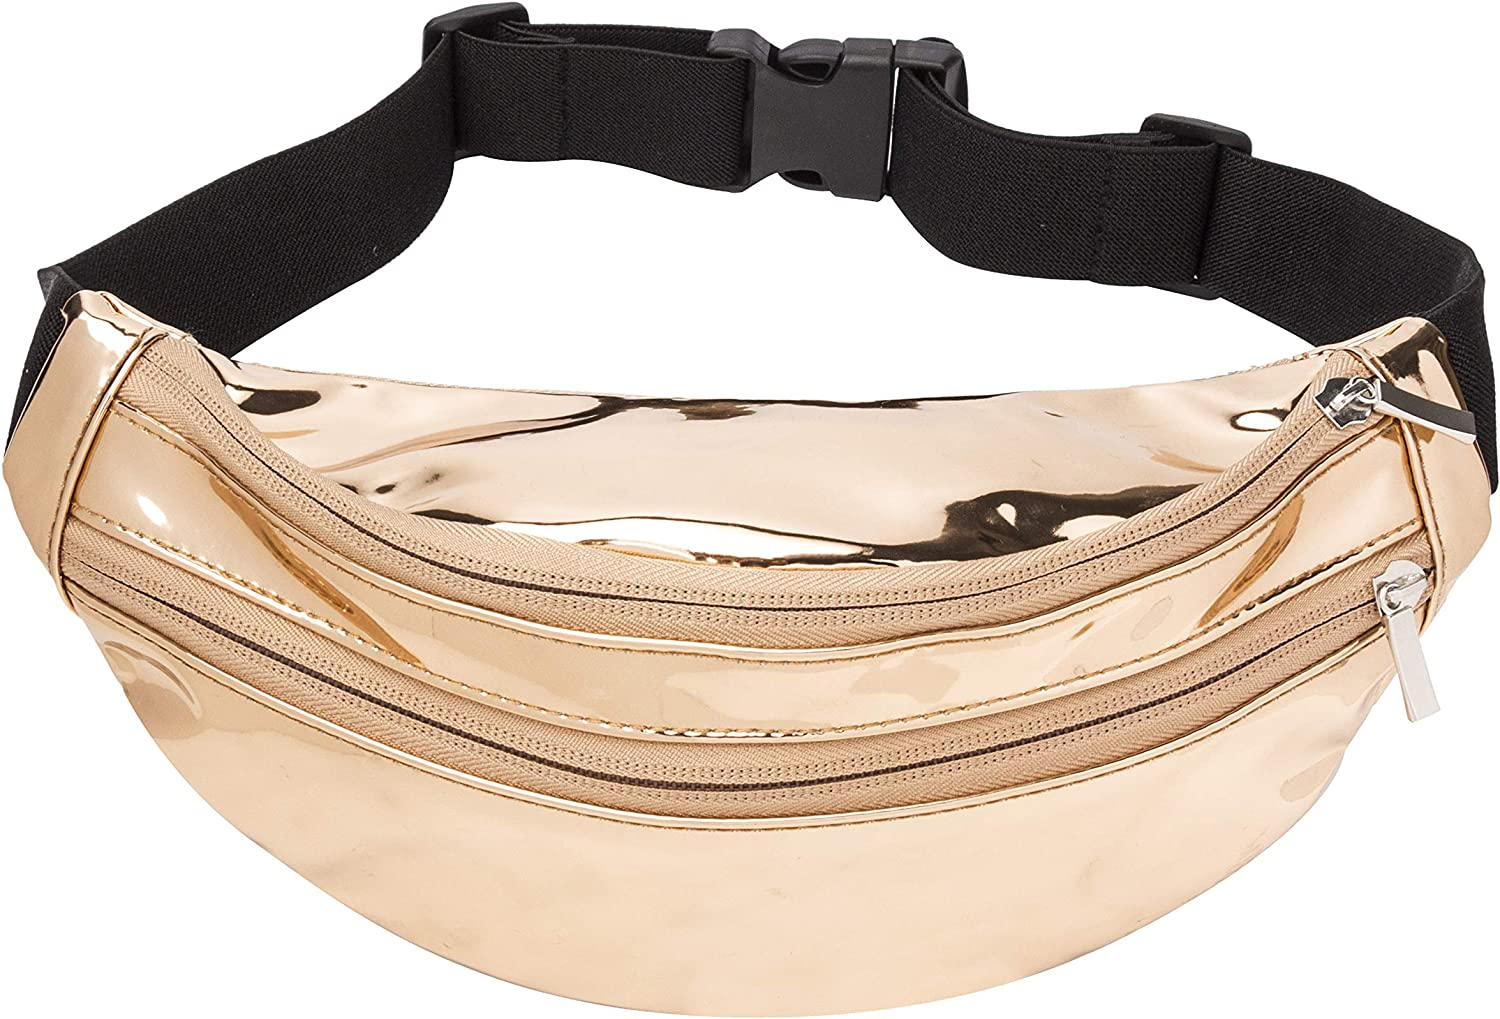 Fanny Pack for Women, Girls, Kids, Waterproof Mirror Surface Waist Packs for Trip, Party, Adjustable Elastic Belt, Gold